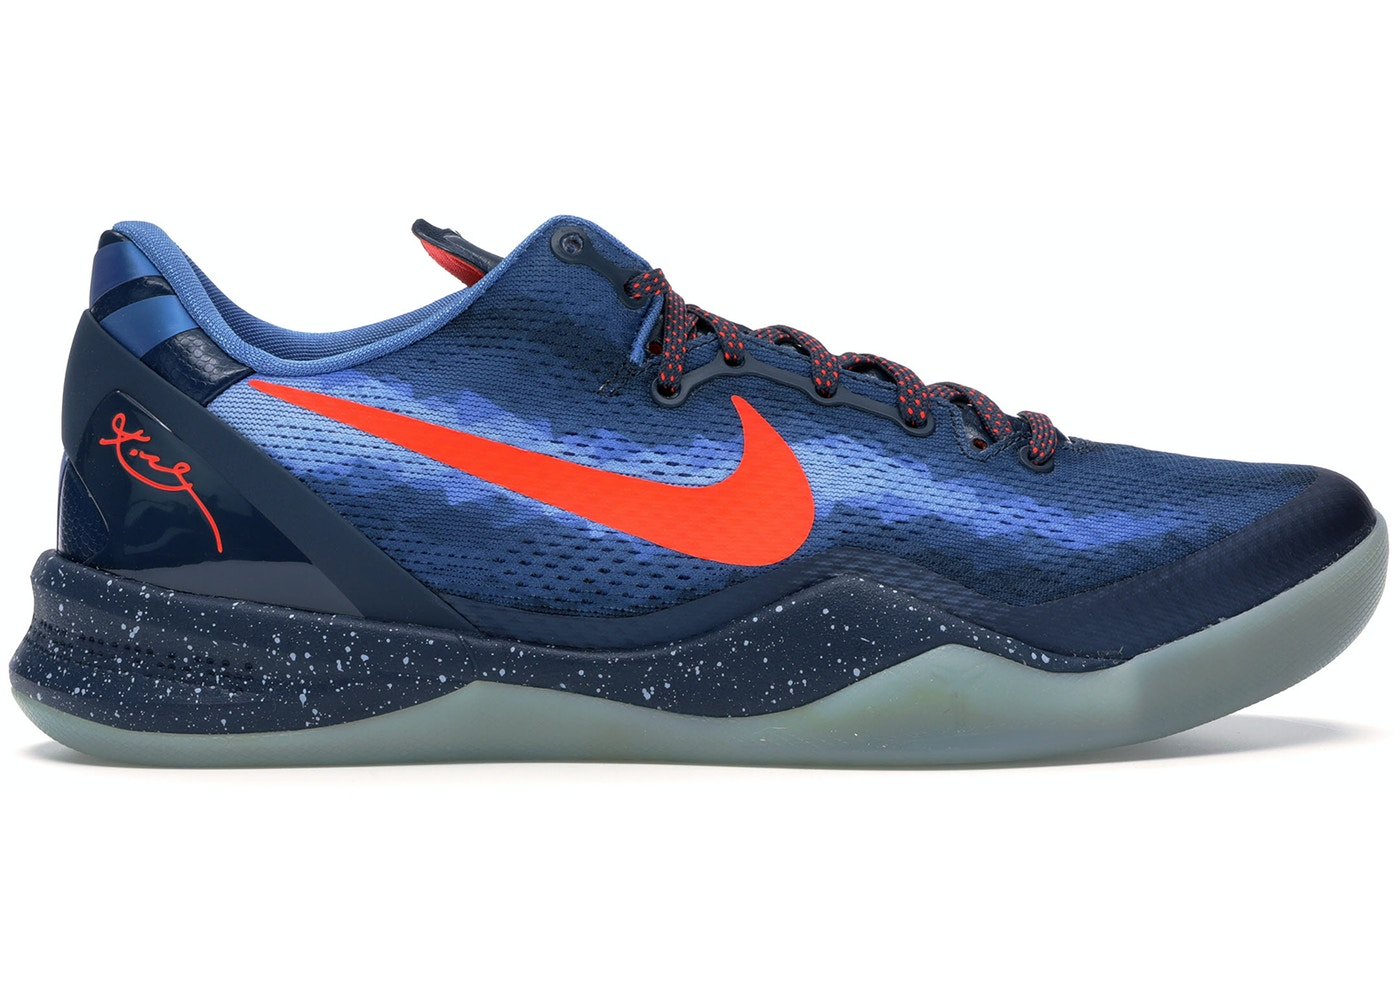 los angeles 77a06 0b9b0 Kobe 8 Blue Blitz - 555035-401